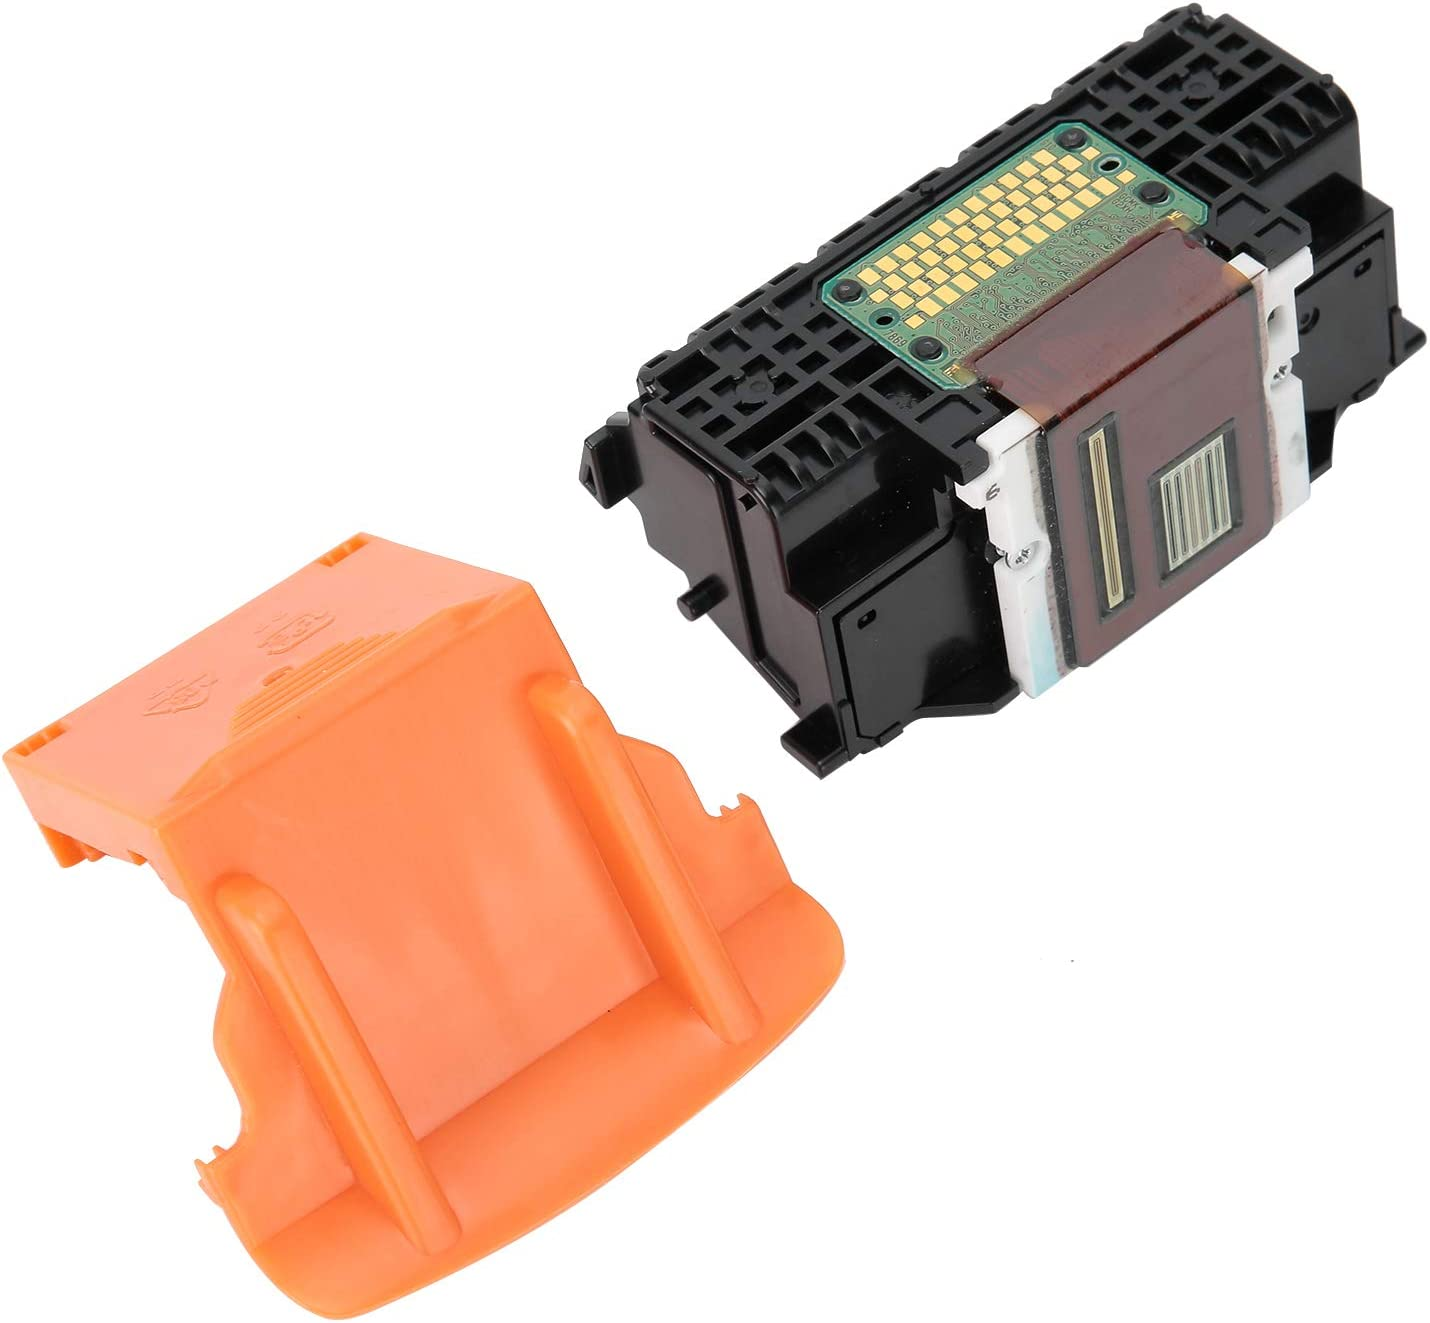 Computer Supplies,Print Head Color for Canons iP7220 iP7250 MG5420 MG5450 Printers Scanners Accessories QY6‑0082